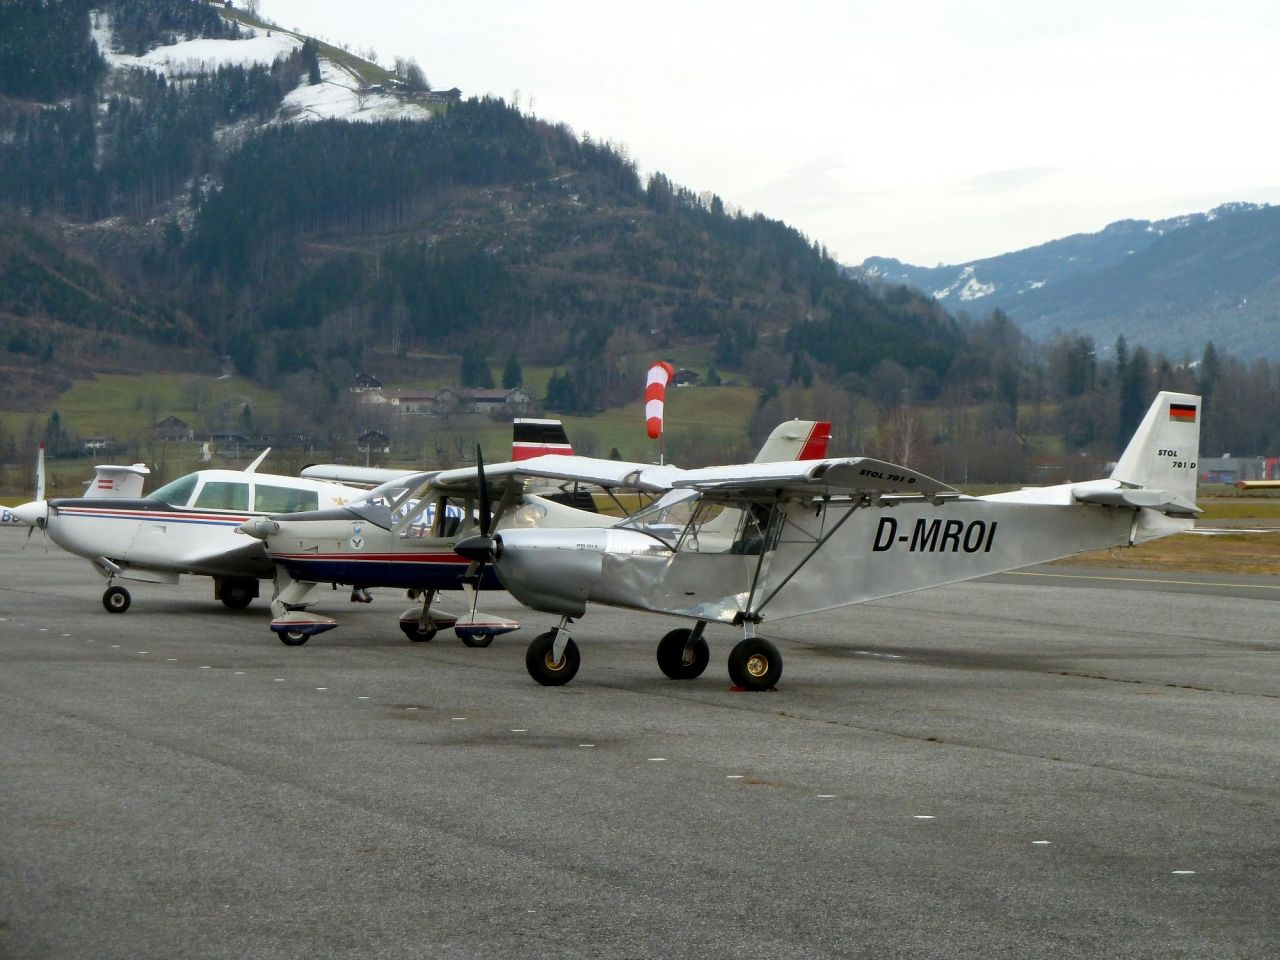 LOWZ_Zell_am_See_2